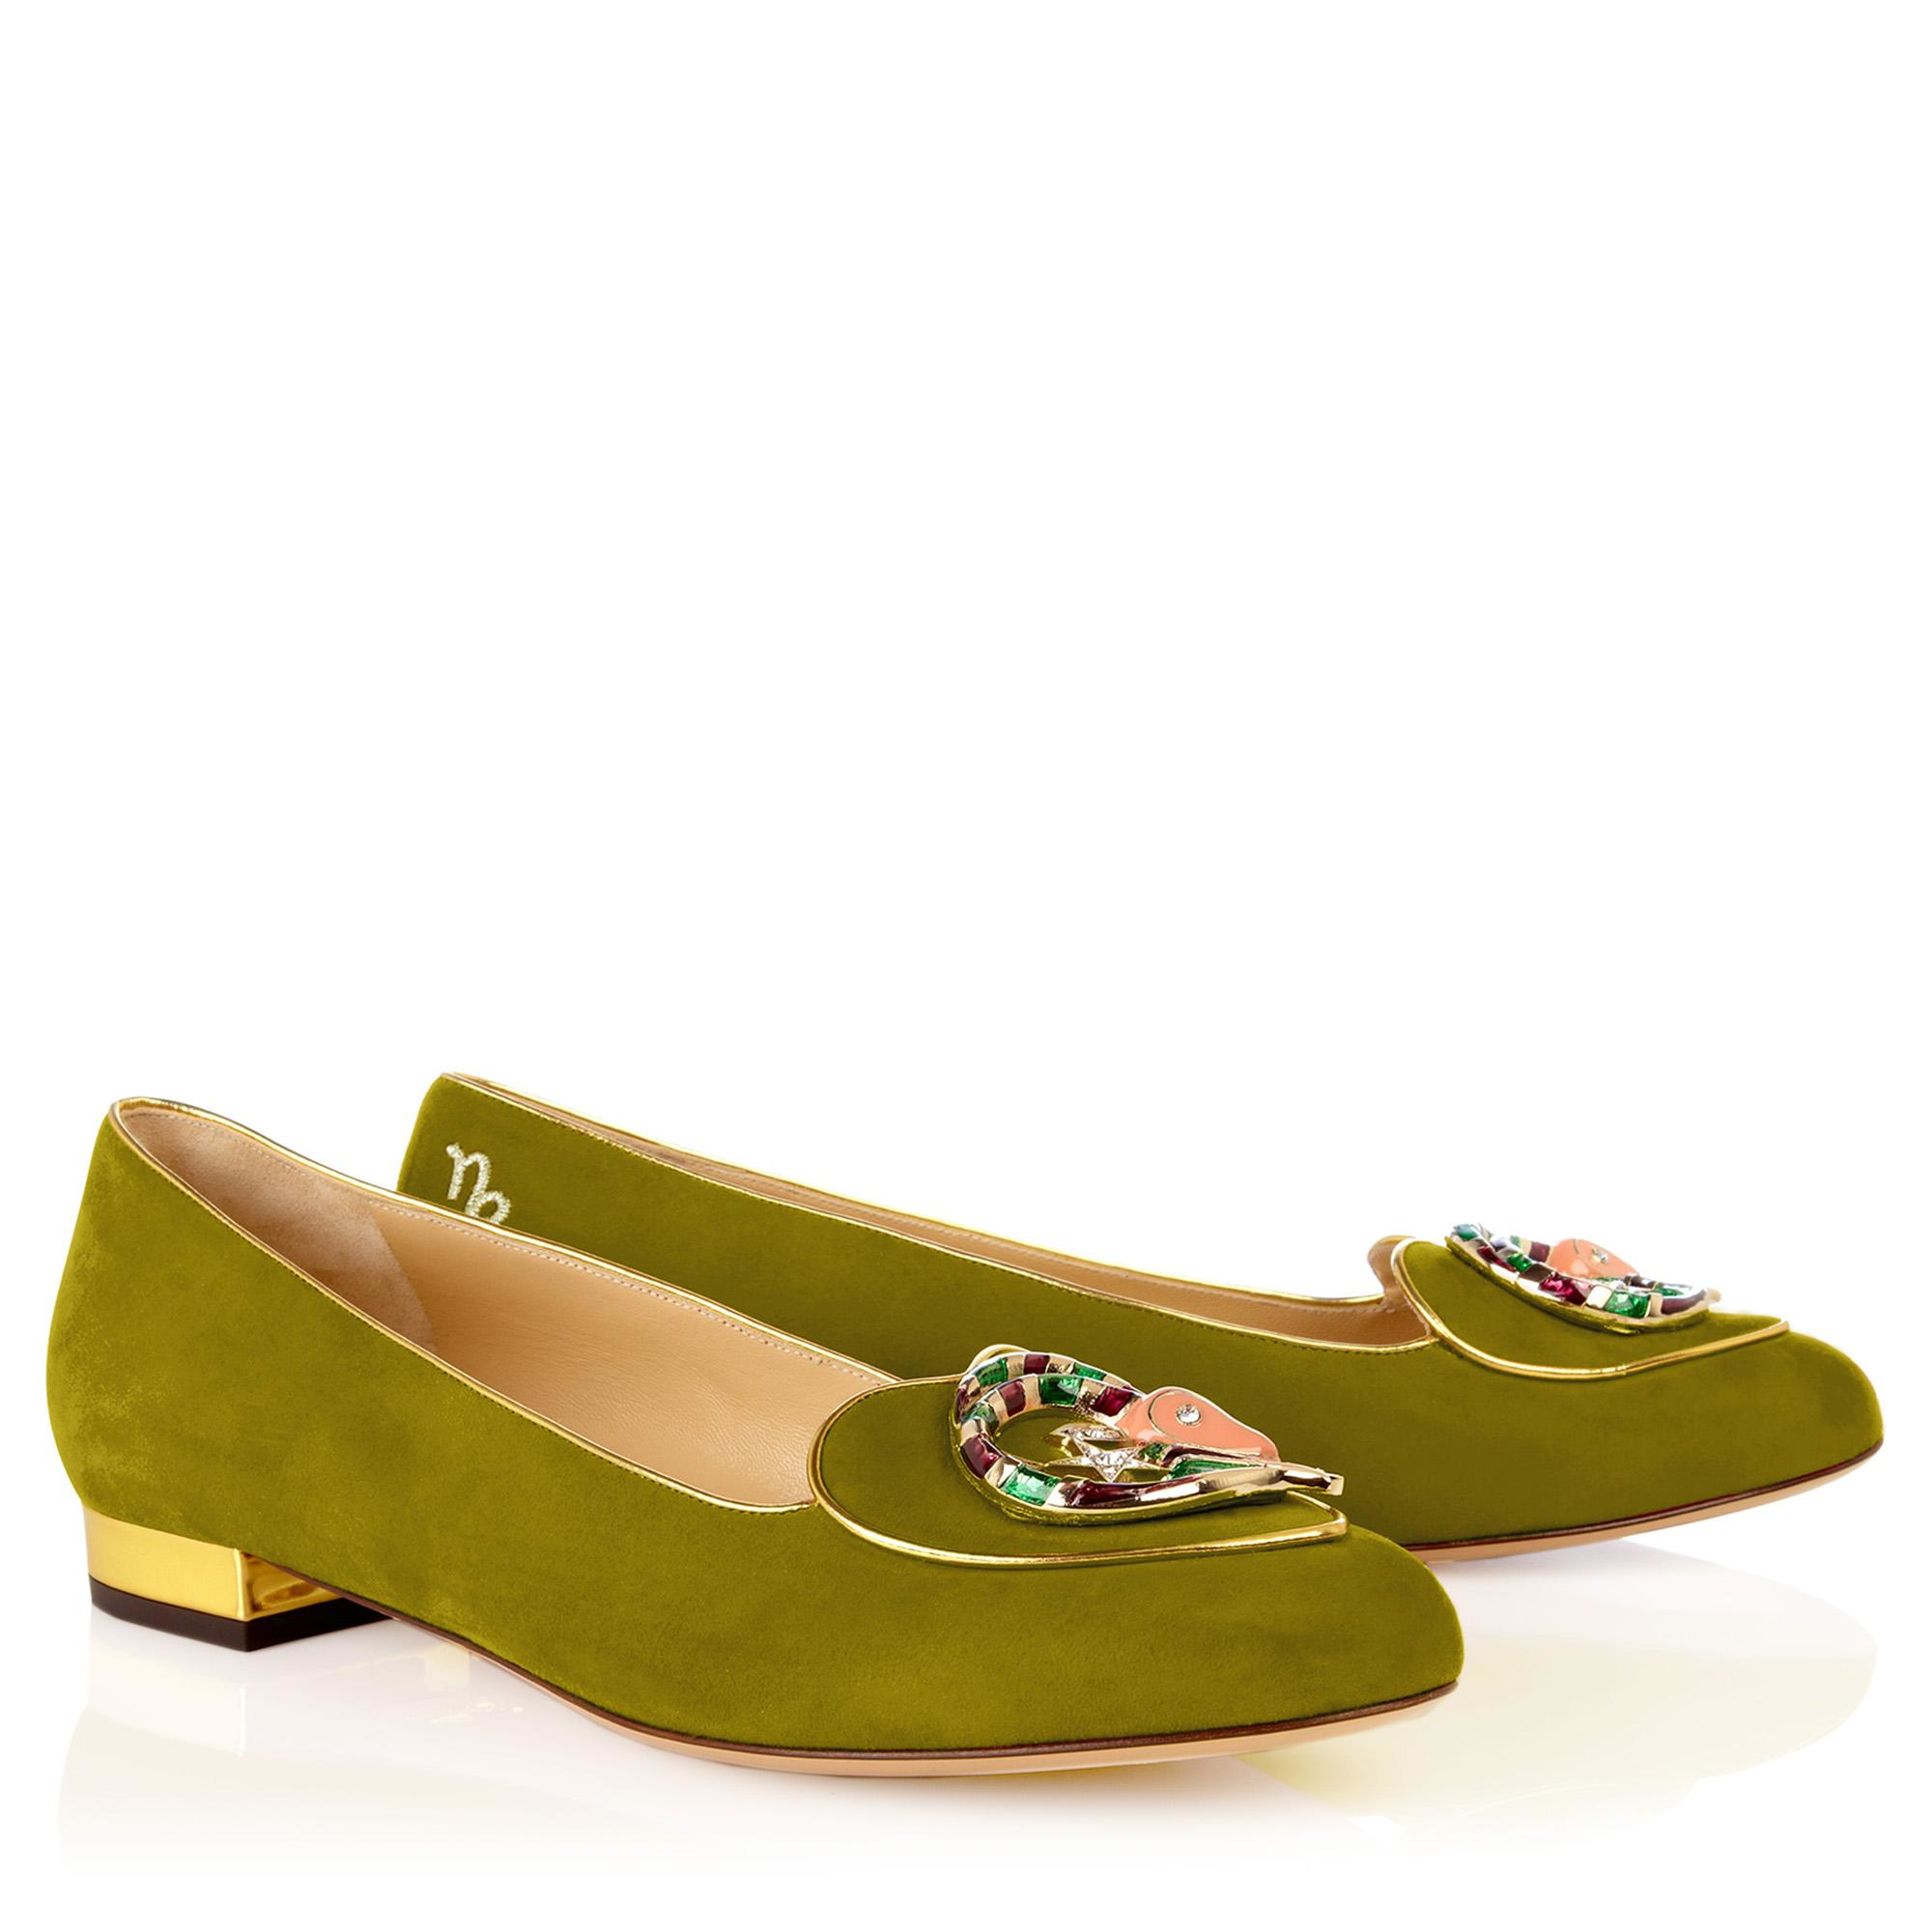 Lyst - Charlotte Olympia Birthday Shoes Capricorn in Green 1fab69597707